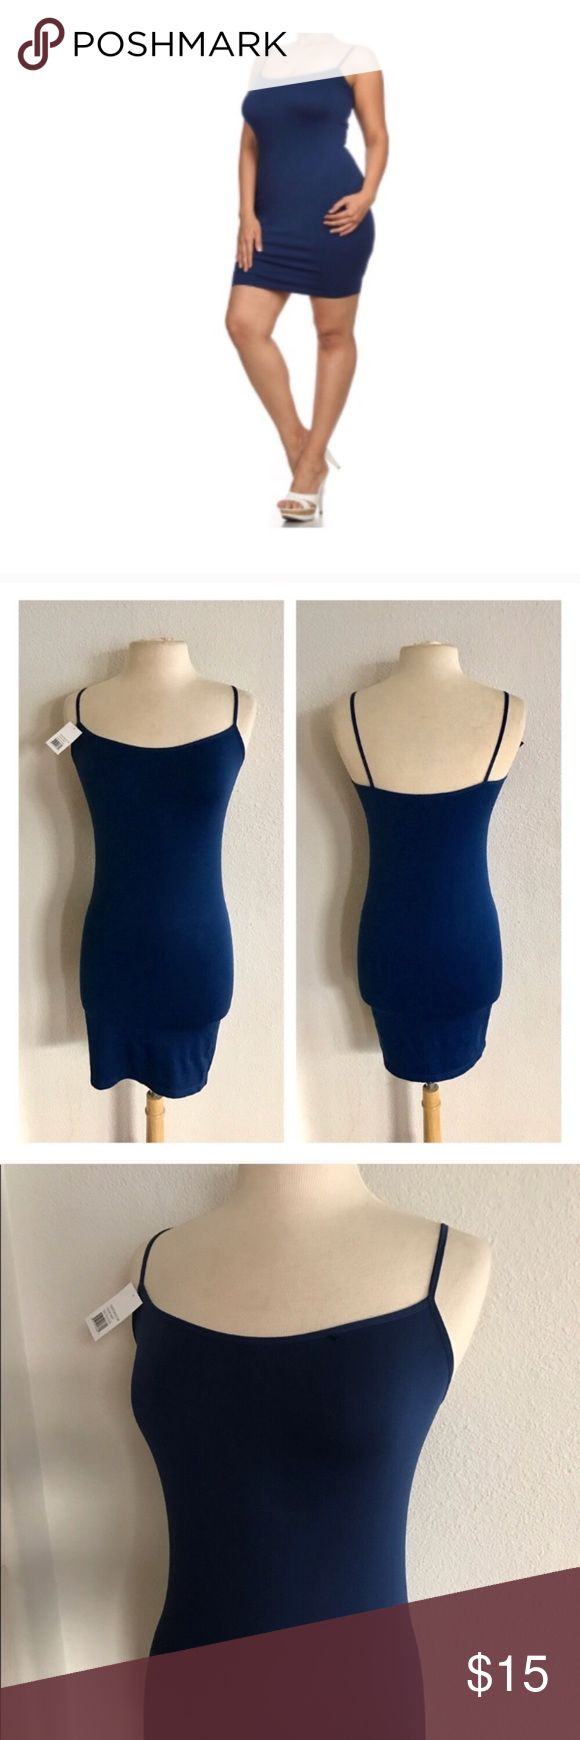 """(L-2x) Blue cami slip Plus size camisole slip. 92% nylon/ 8% spandex. Great for wearing under tunics/ dresses that are slightly sheer!  Measures 32"""" long with a 30"""" bust Bust stretches comfortably to about 46"""". These stretch well beyond measurements. I would recommend this for L-2x.  *Please note: this is not a dress. It's meant to be worn under something.  Availability: 7 ⭐️This item is brand new with tags 💲Price is firm unless bundled ✅Bundle offers Tops Camisoles"""